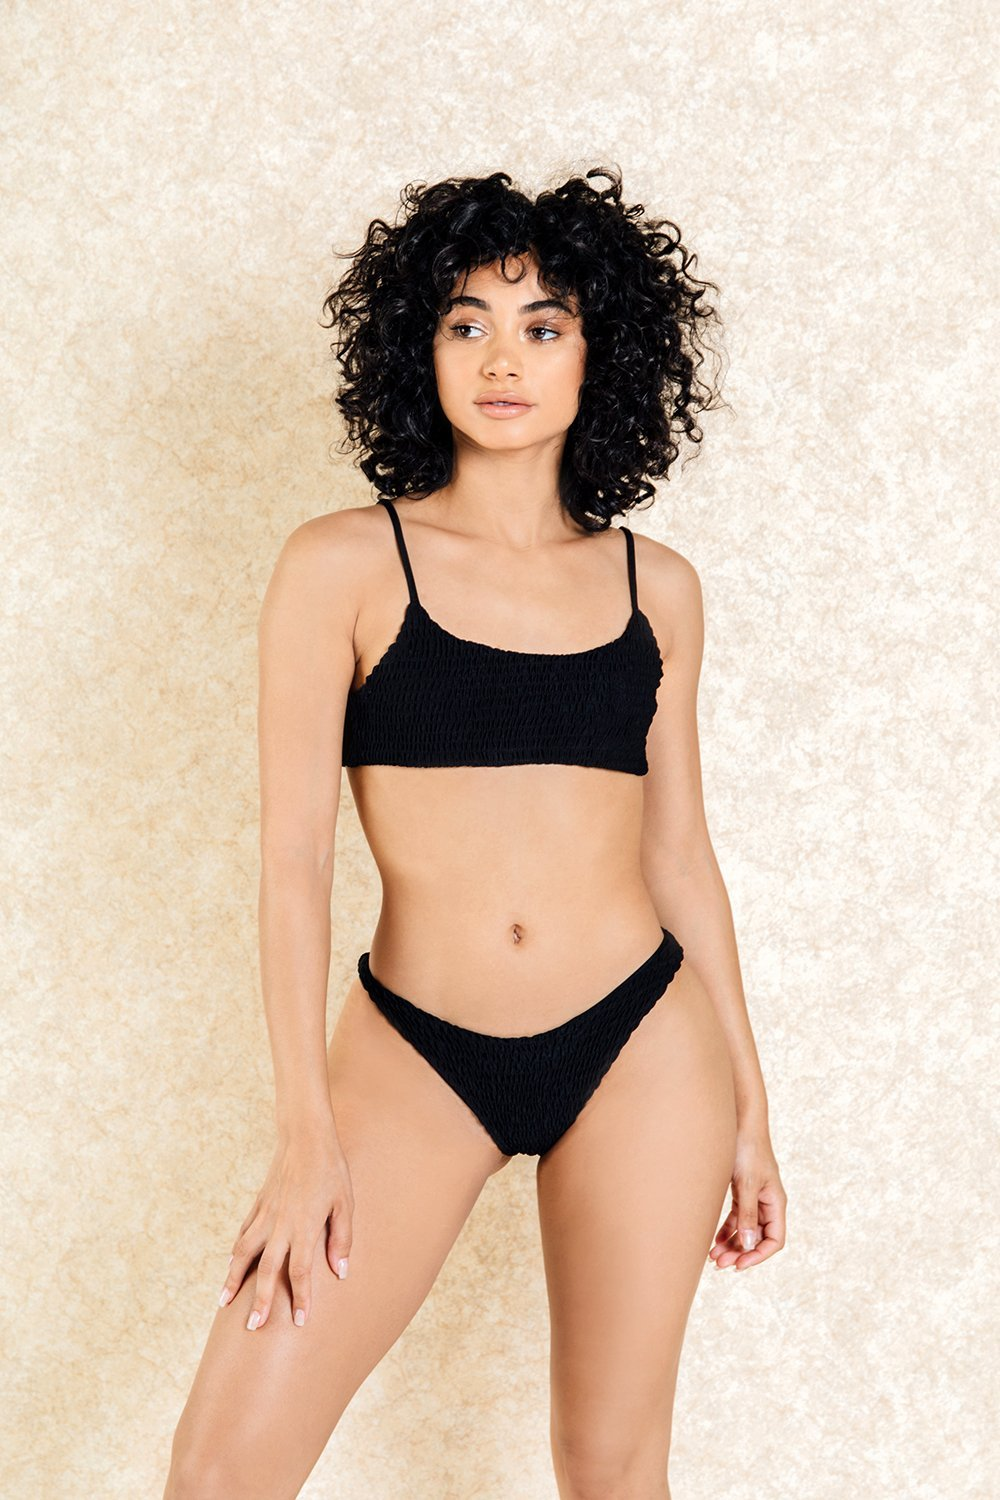 Hendrix Black Crop Super Short Bikini Set - Klasha